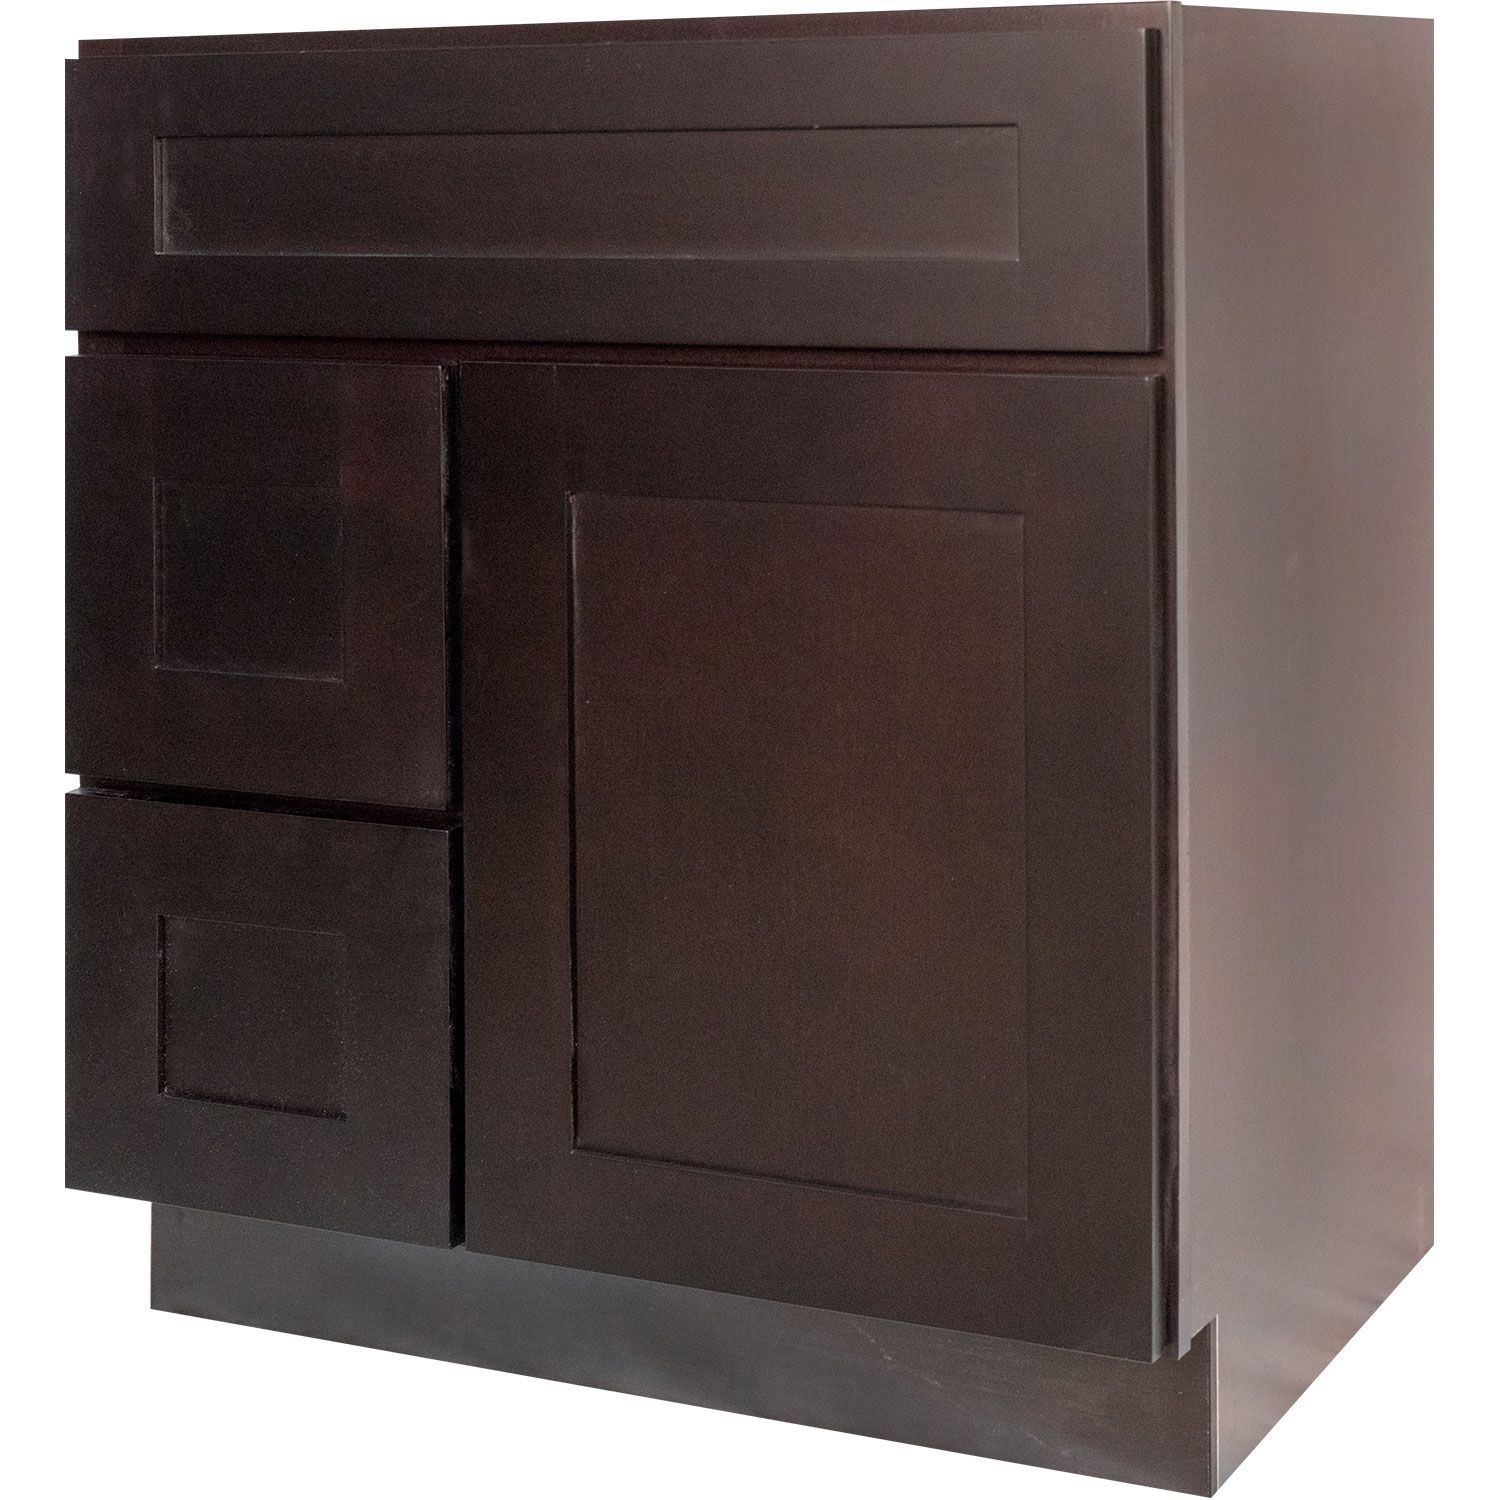 30 Inch Bathroom Vanity Single Sink Cabinet In Shaker Espresso Dark Brown With Soft Close Drawers 30 Inch Bathroom Vanity Bathroom Vanity Cabinets Brown Bathroom